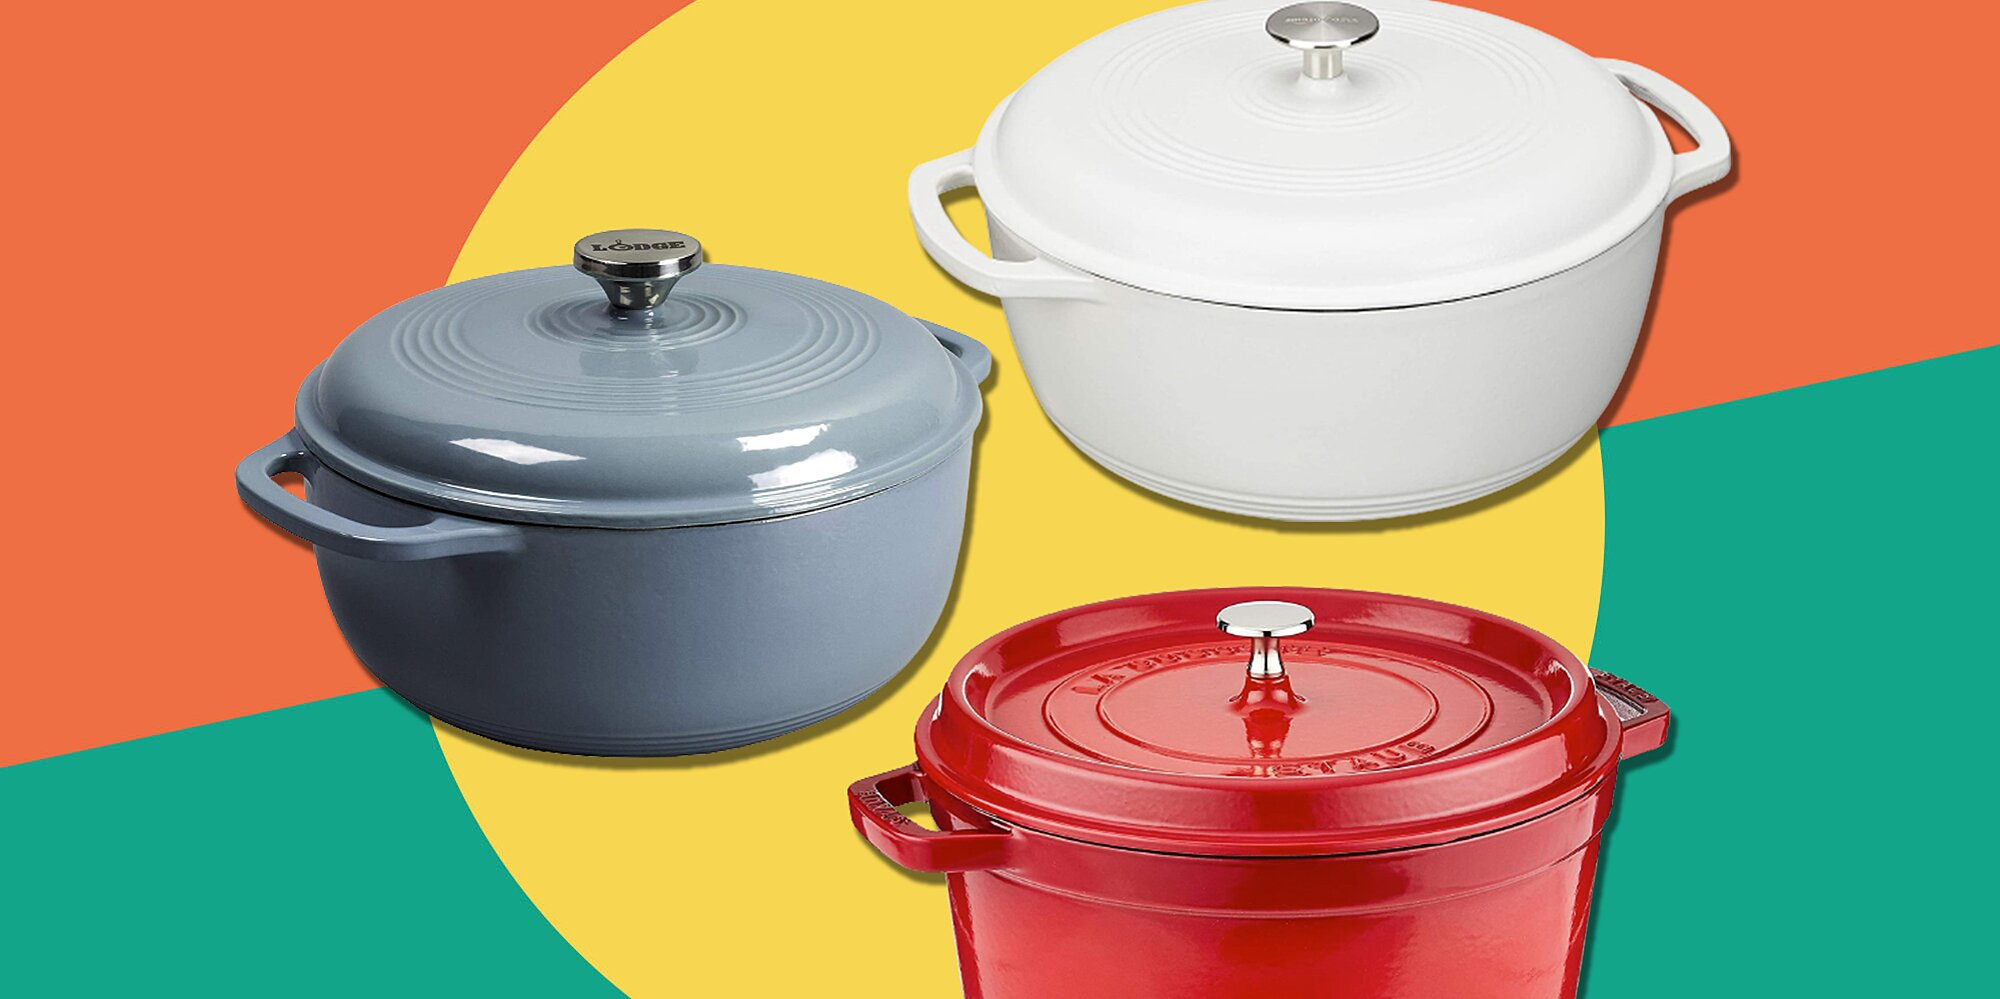 The 6 Best Dutch Oven Deals to Shop on Amazon Prime Day-Including Lodge for 30% Off